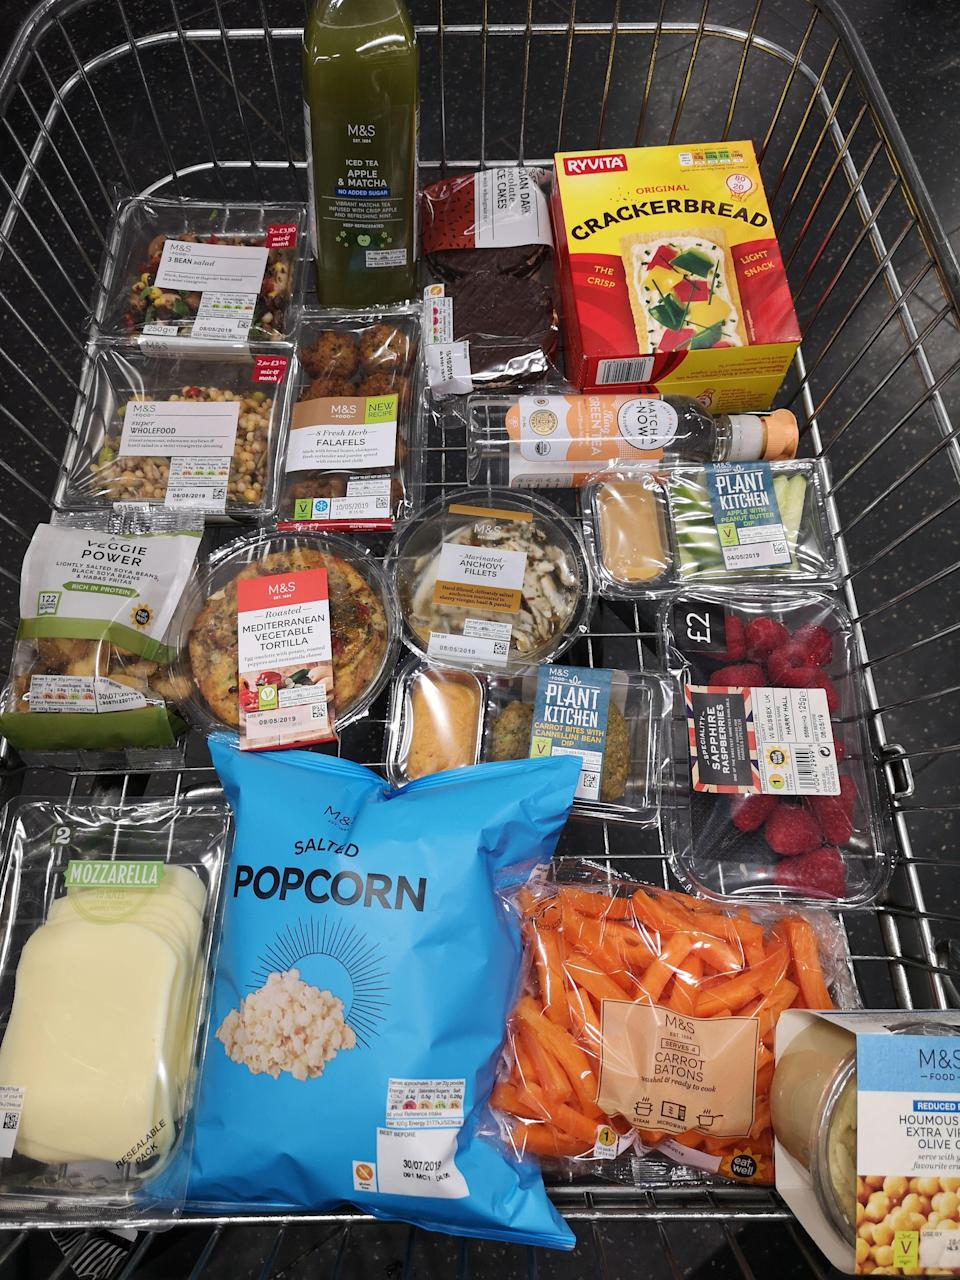 """<p>With the warmer weather comes a plethora of shop-made and ready-to-go picnic staples from your favourite supermarkets (<a href=""""https://www.marksandspencer.com/"""" rel=""""nofollow noopener"""" target=""""_blank"""" data-ylk=""""slk:Marks and Spencer"""" class=""""link rapid-noclick-resp"""">Marks and Spencer</a>, we're looking at you), prepared for you to enjoy in the park, on the beach or from your living room sofa—whatever you'd prefer.</p><p>Before you dive in and spend your hard earned cash on not so nutrient dense foods, picnics don't have to totally derail your nutrition. Far from it, as registered nutritionist and food expert Jenna Hope (@jennahopenutrition) is here to prove.</p><p>Women's Health sent Hope into her local M&S to share what she'd buy for a picnic with friends. </p><p>Keep scrolling for her top picks.</p>"""